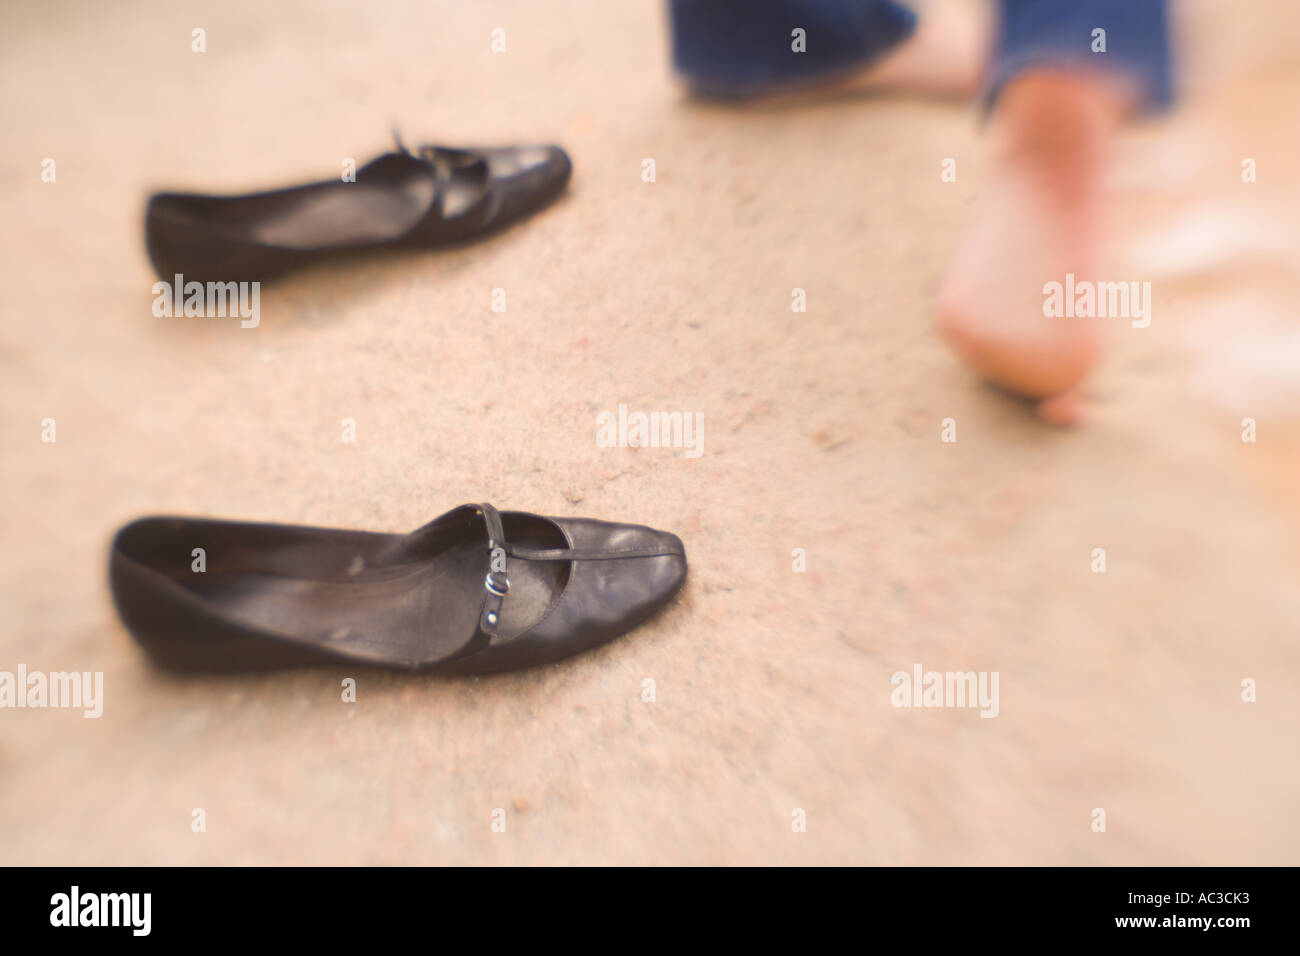 Woman Who s Left Her Shoes Behind - Stock Image